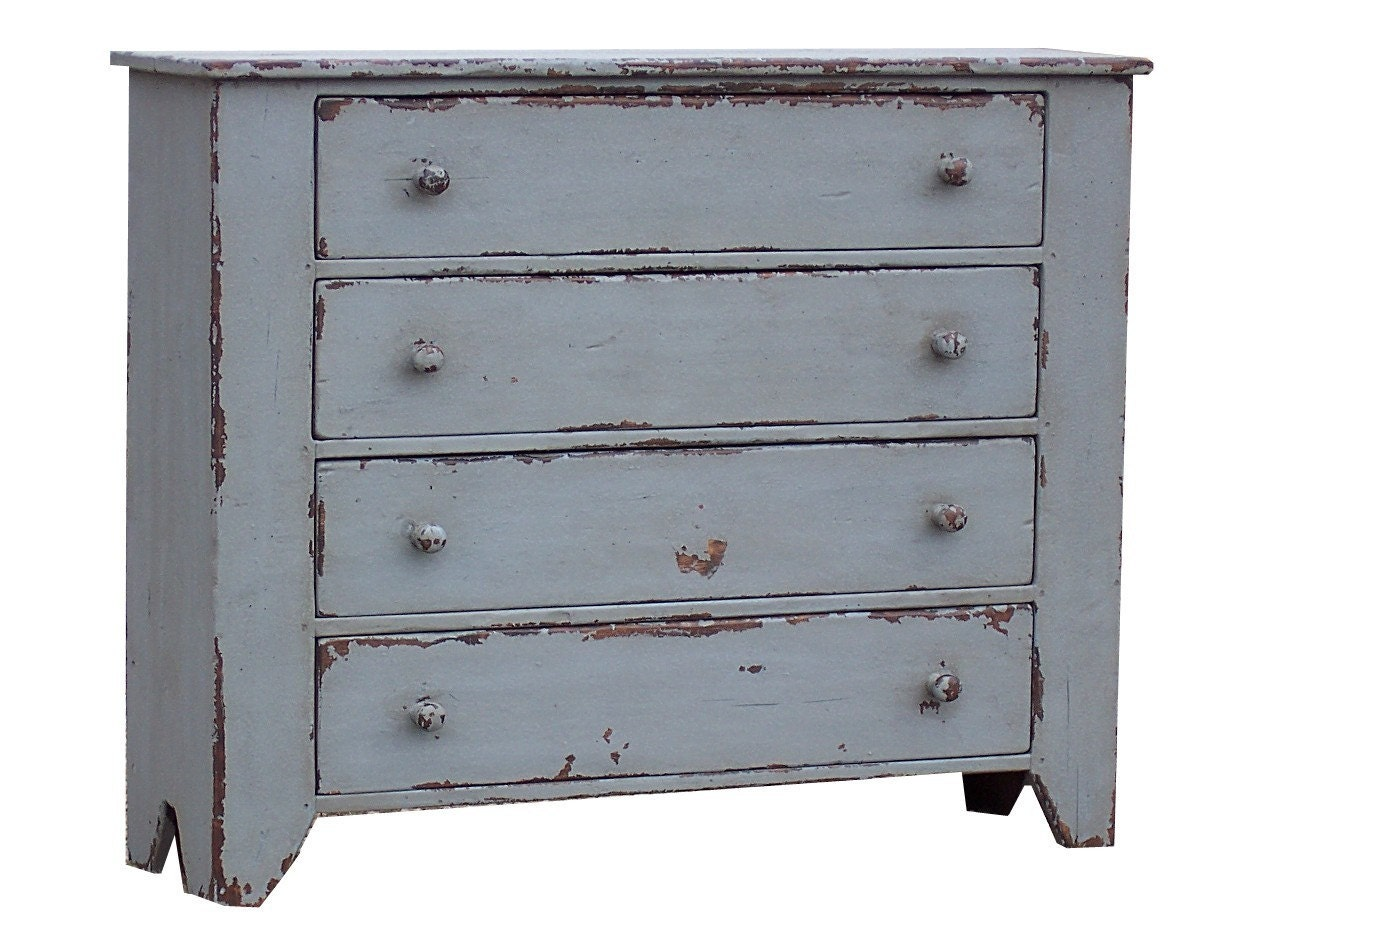 PRIMITIVE PAINTED COUNTRY CHEST OF DRAWERS DRESSER BUREAU REPRODUCTION STYLE FURNITURE